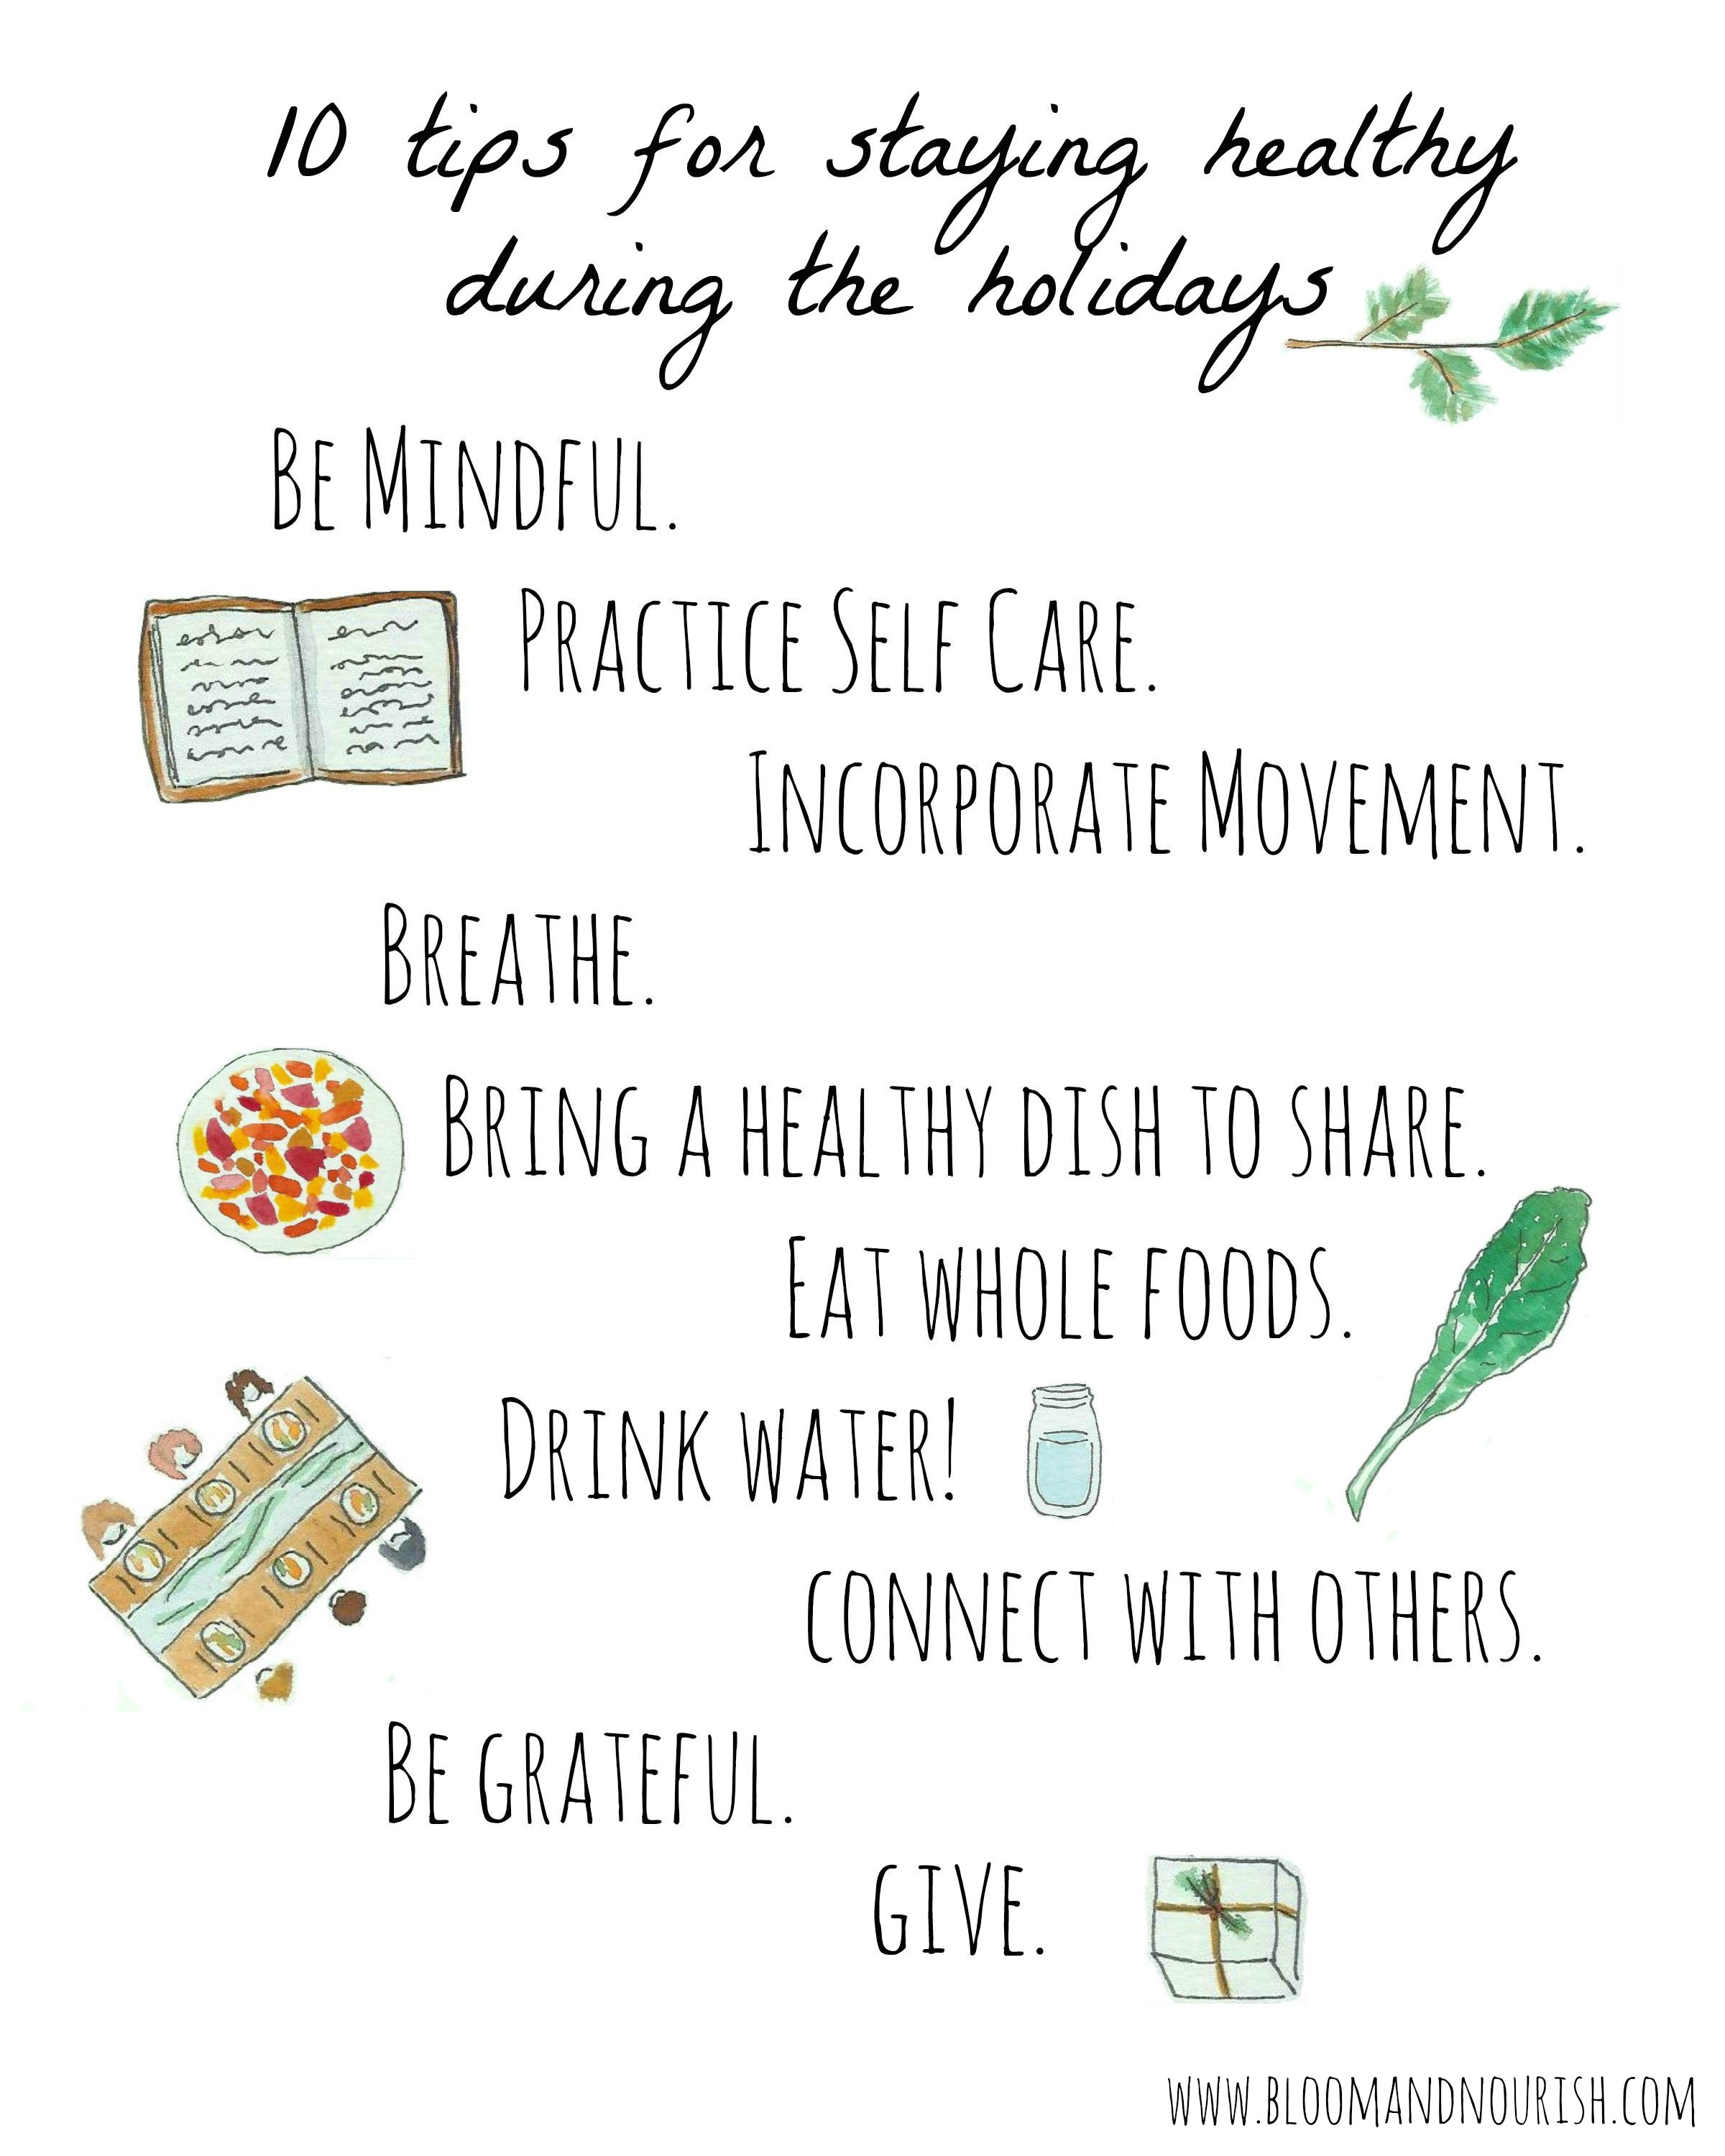 10 Tips For Staying Healthy During The Holidays